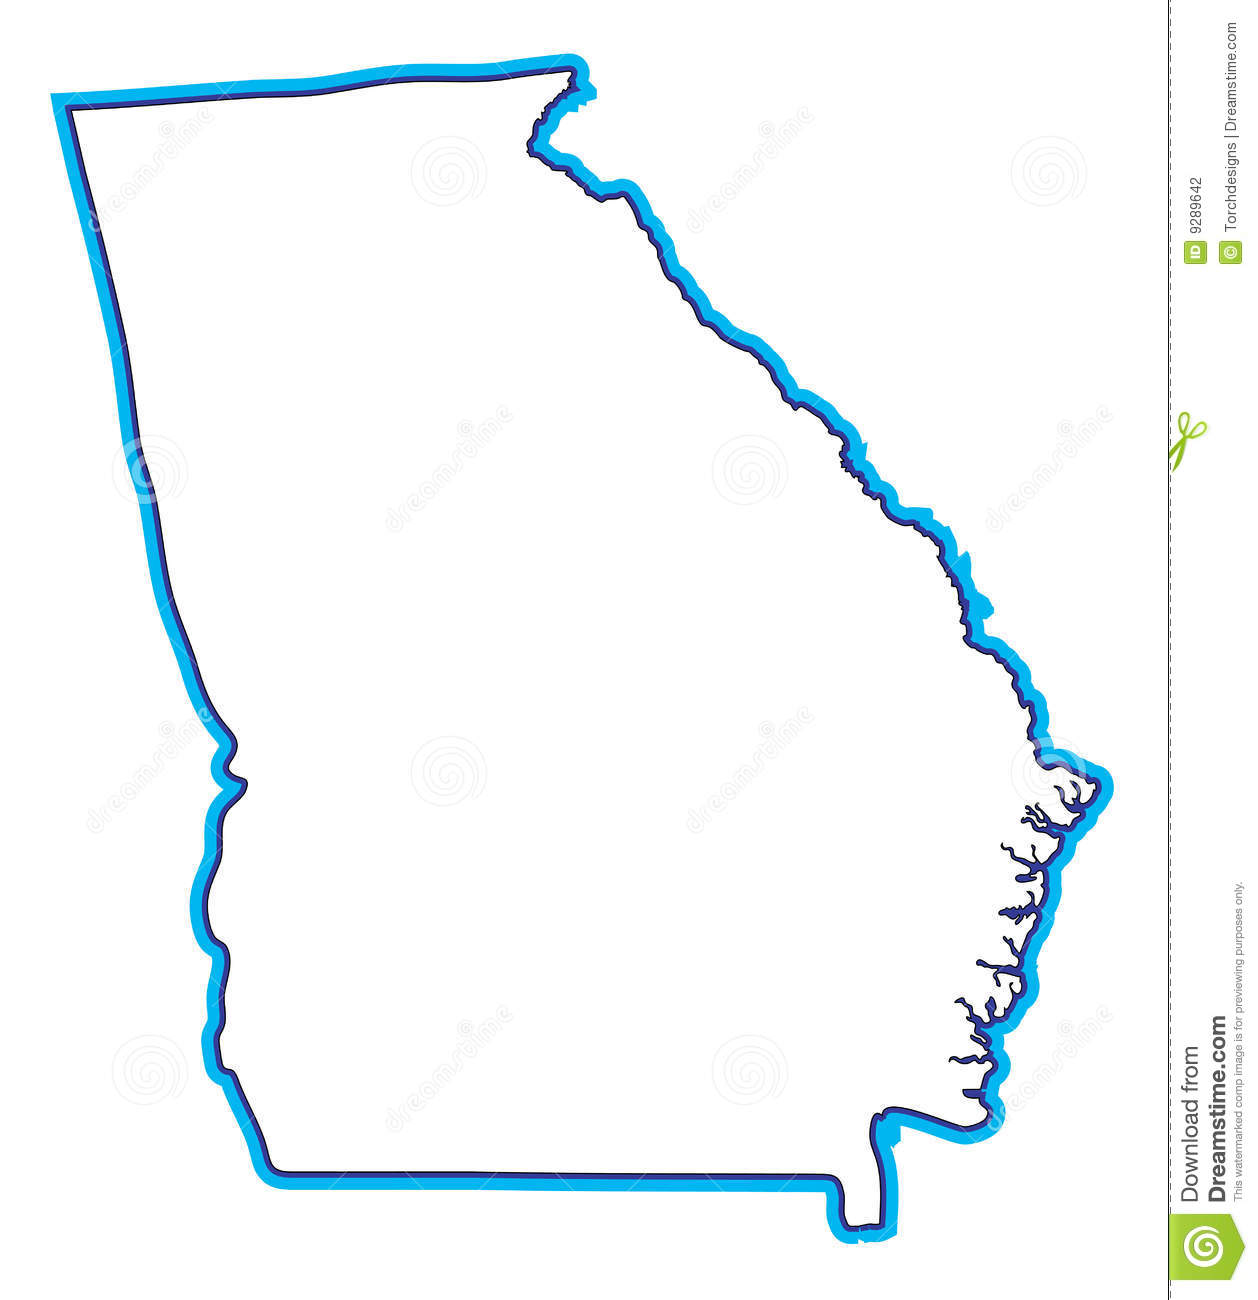 Georgia on us map clipart banner free stock State of georgia map clipart - ClipartFest banner free stock